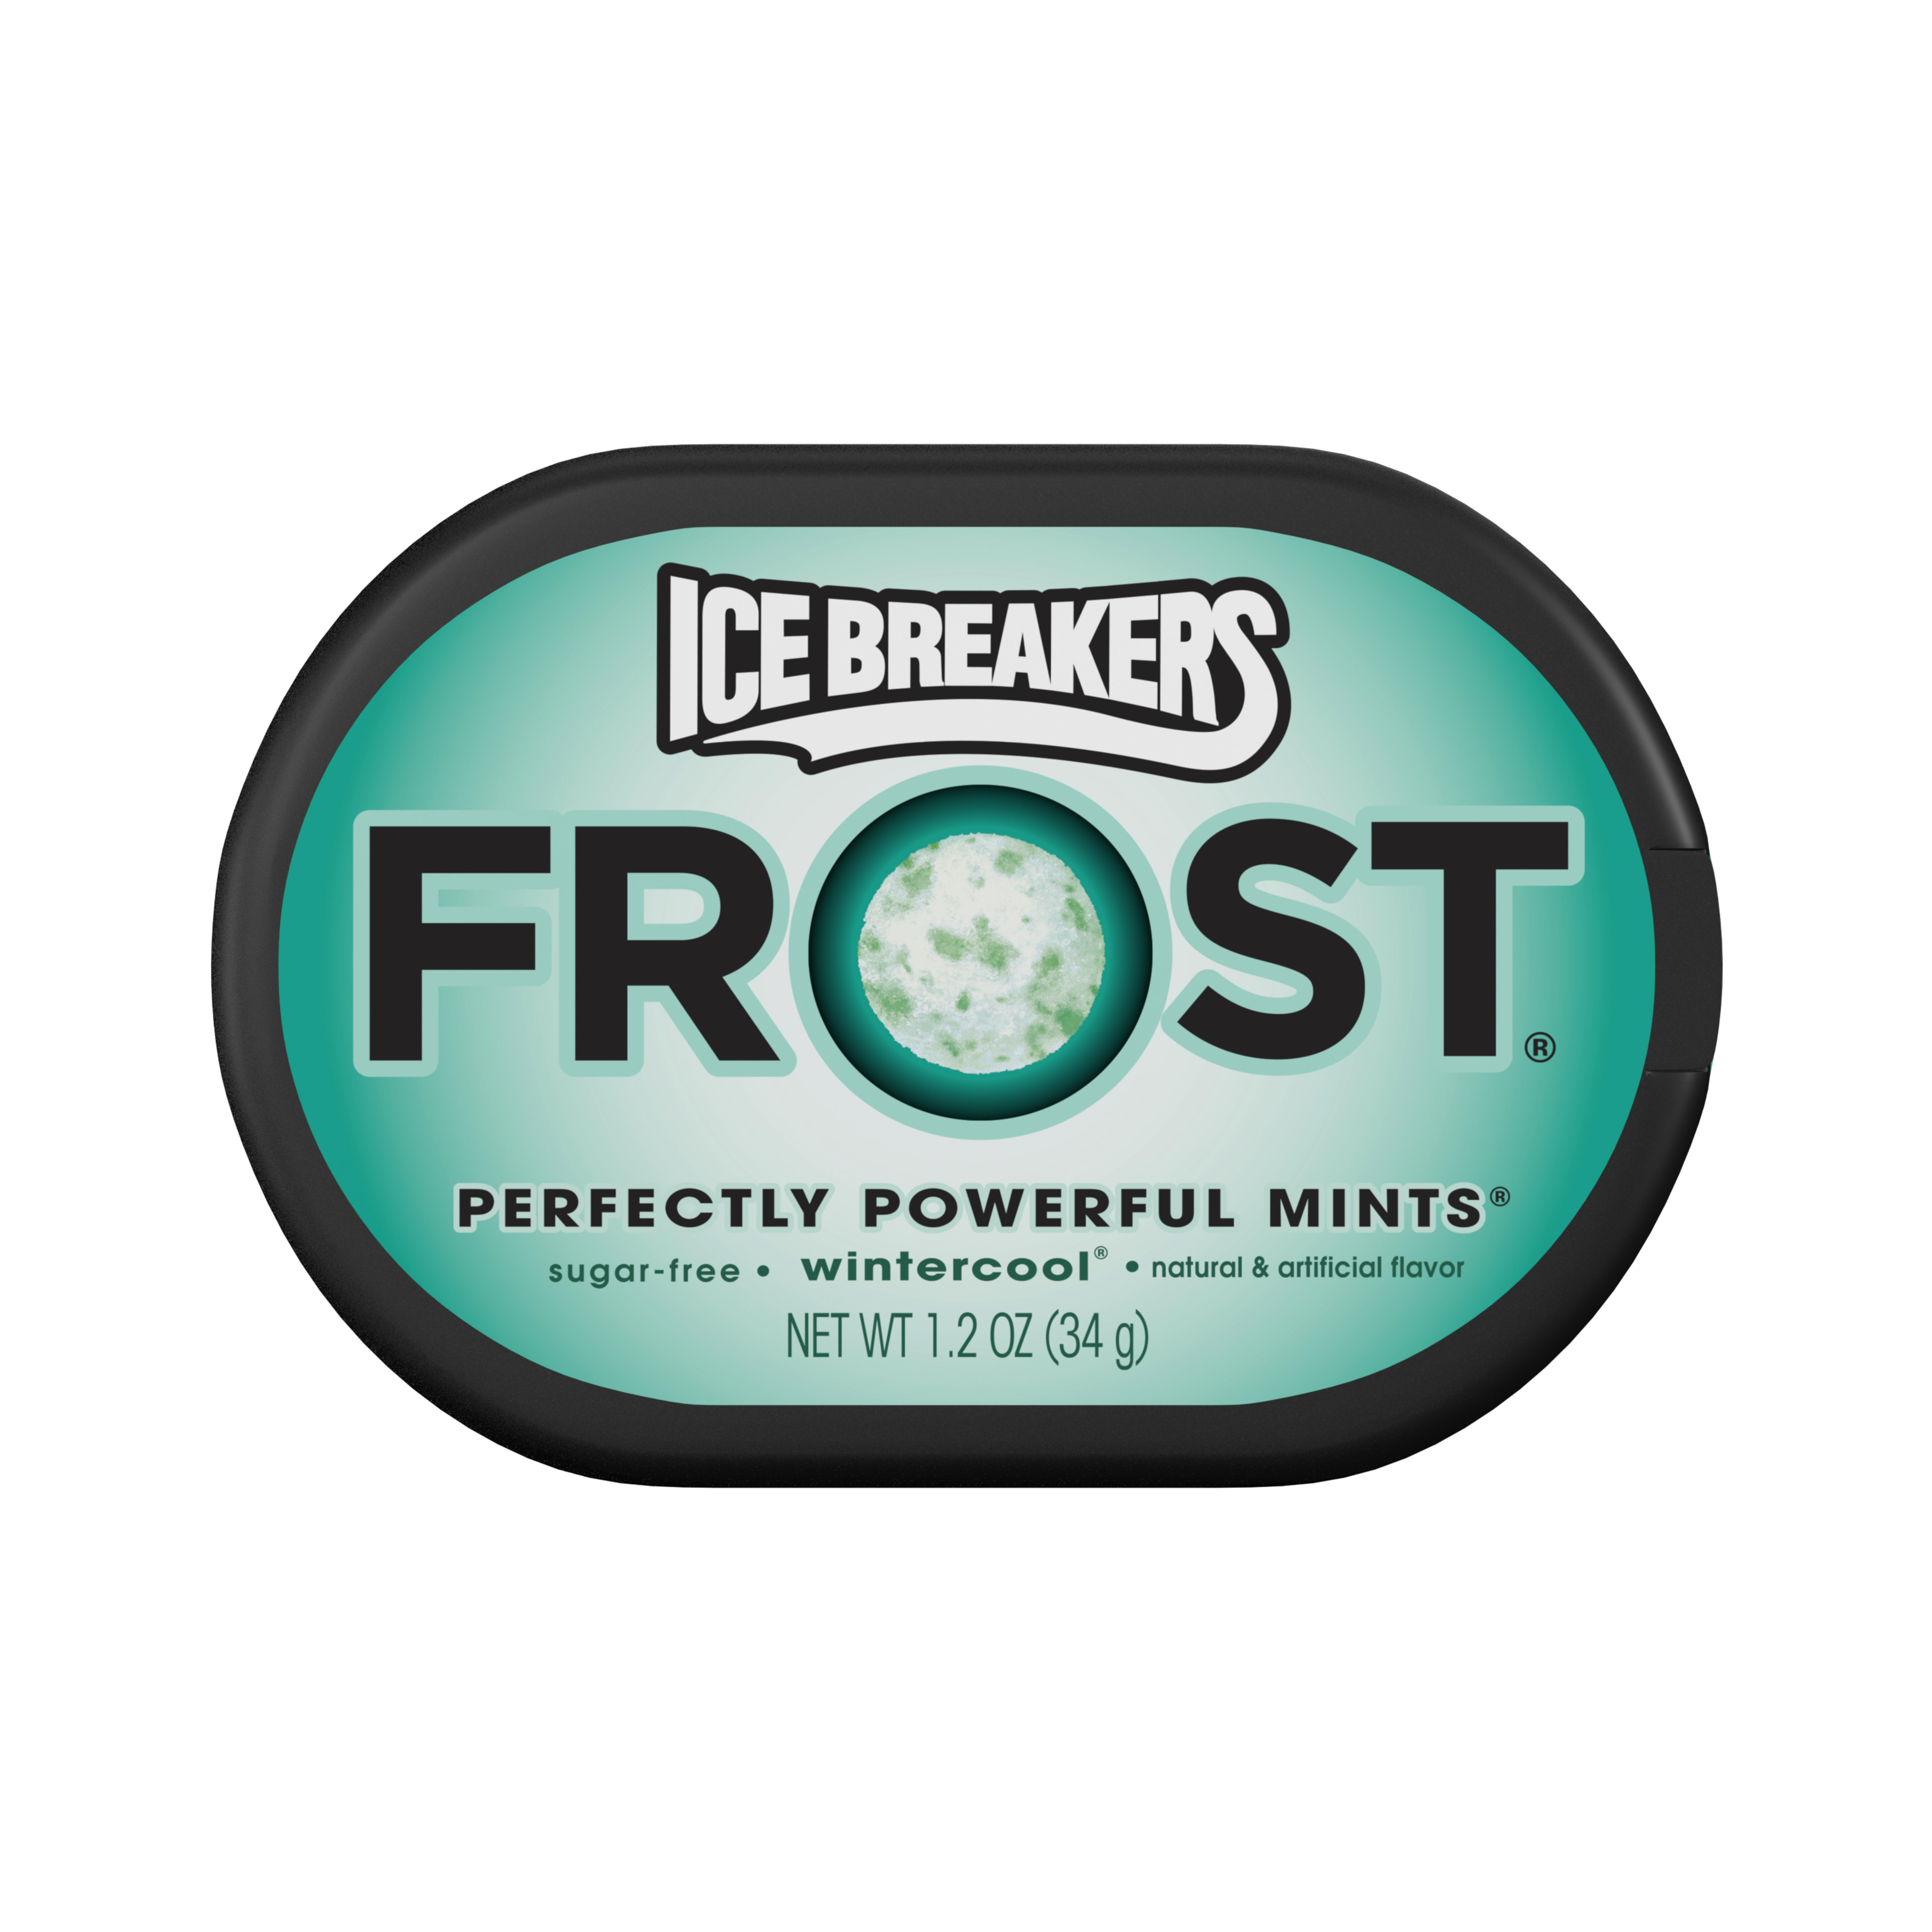 Ice Breakers Frost, Sugar-Free Wintercool Mints, 1.2 Oz